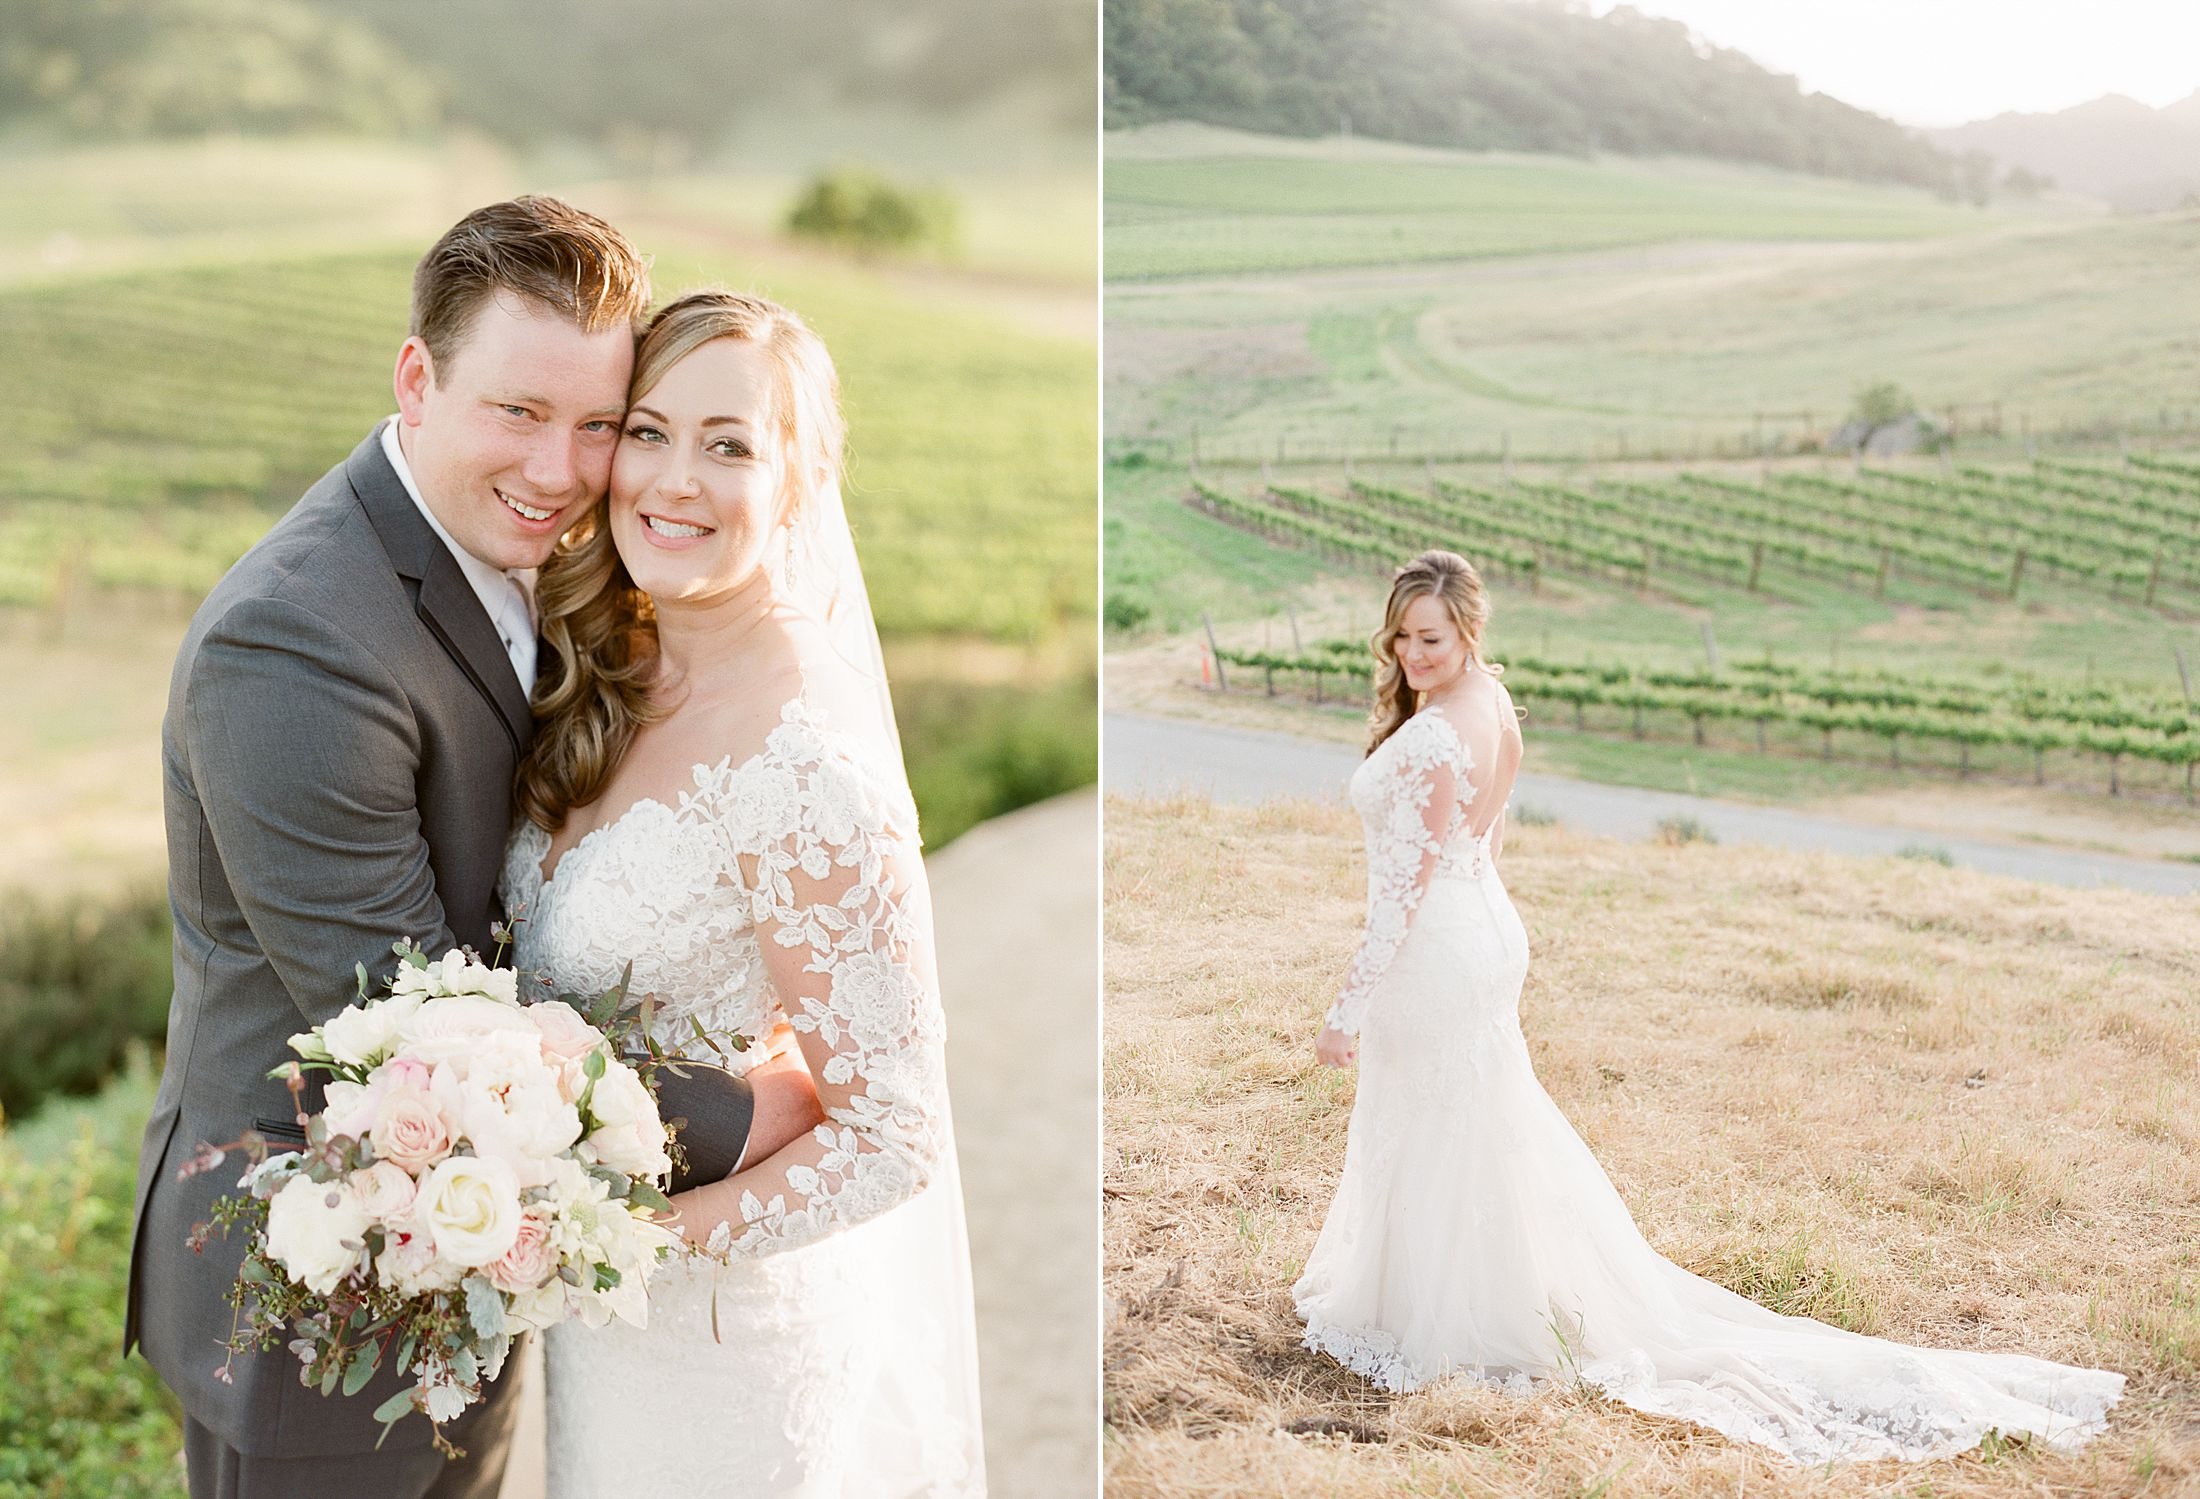 Clos LaChance Winery Wedding - Ashley Baumgartner - Kat & Kurt - Morgan Hill Wedding - Winery Wedding - Bay Area Photographer - Sacramento Wedding Photographer_0067.jpg